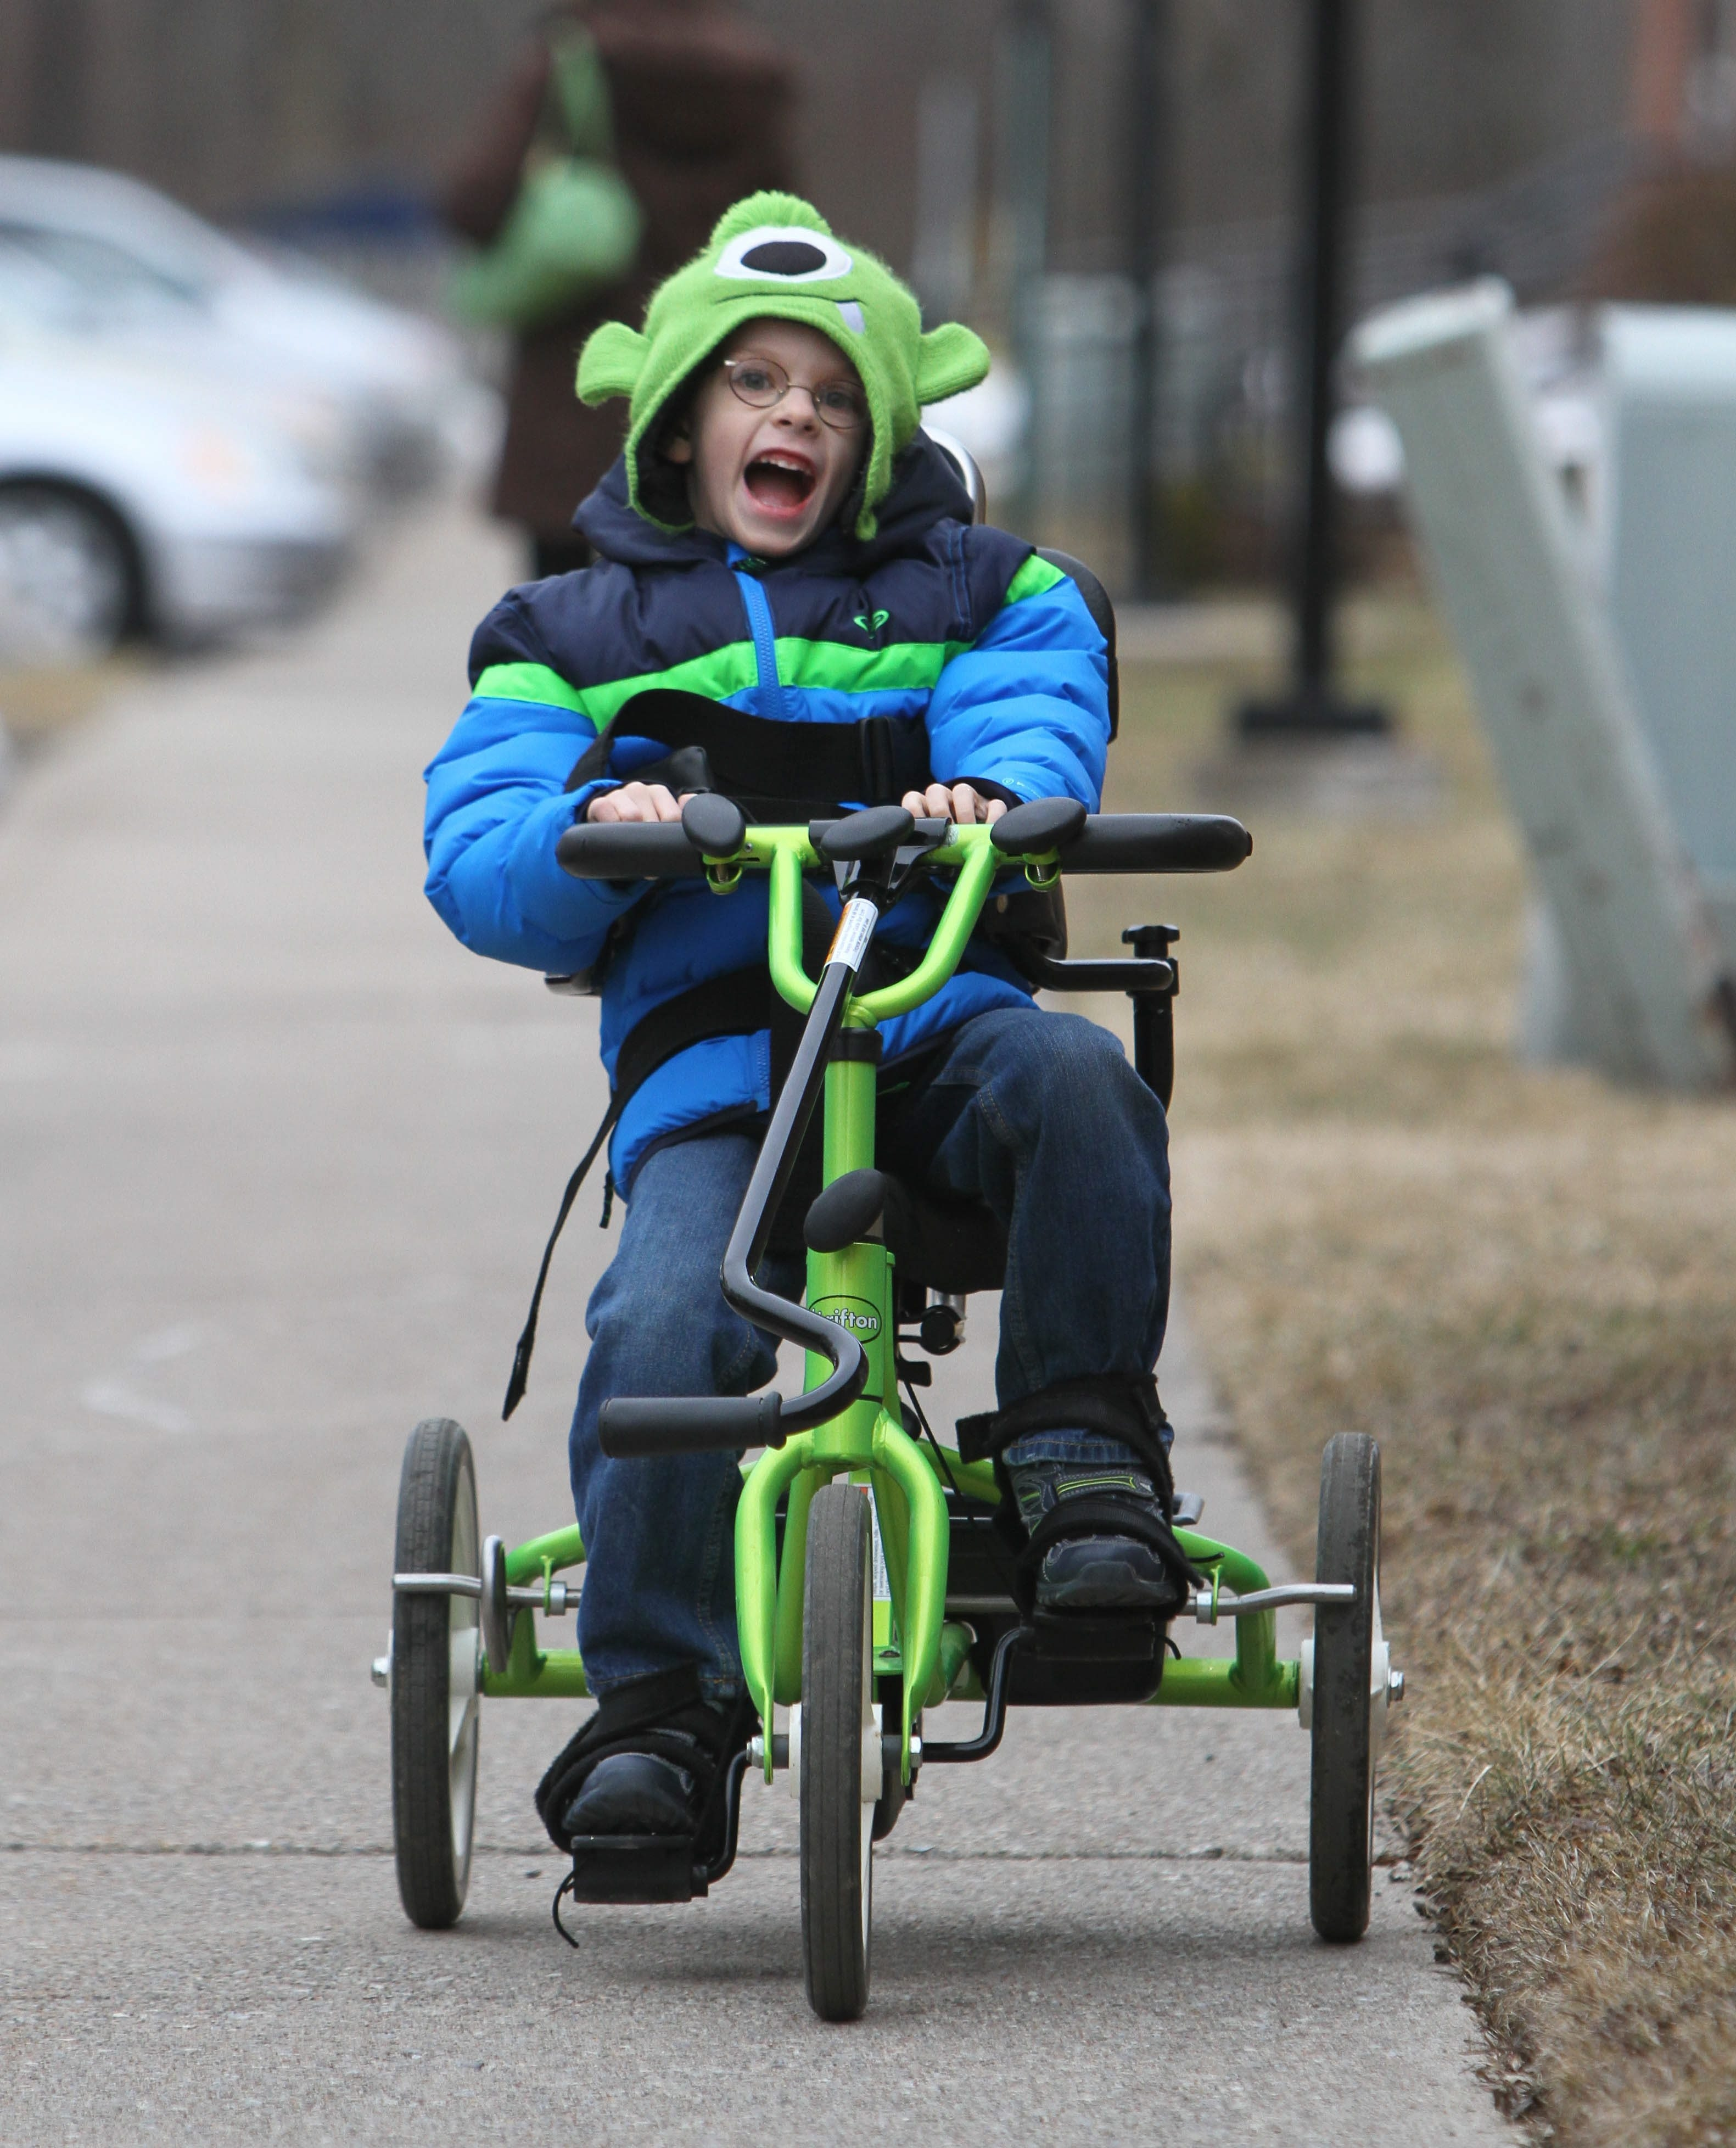 Brandon Steffan, 6, rides his modified tricycle at his Amherst home.